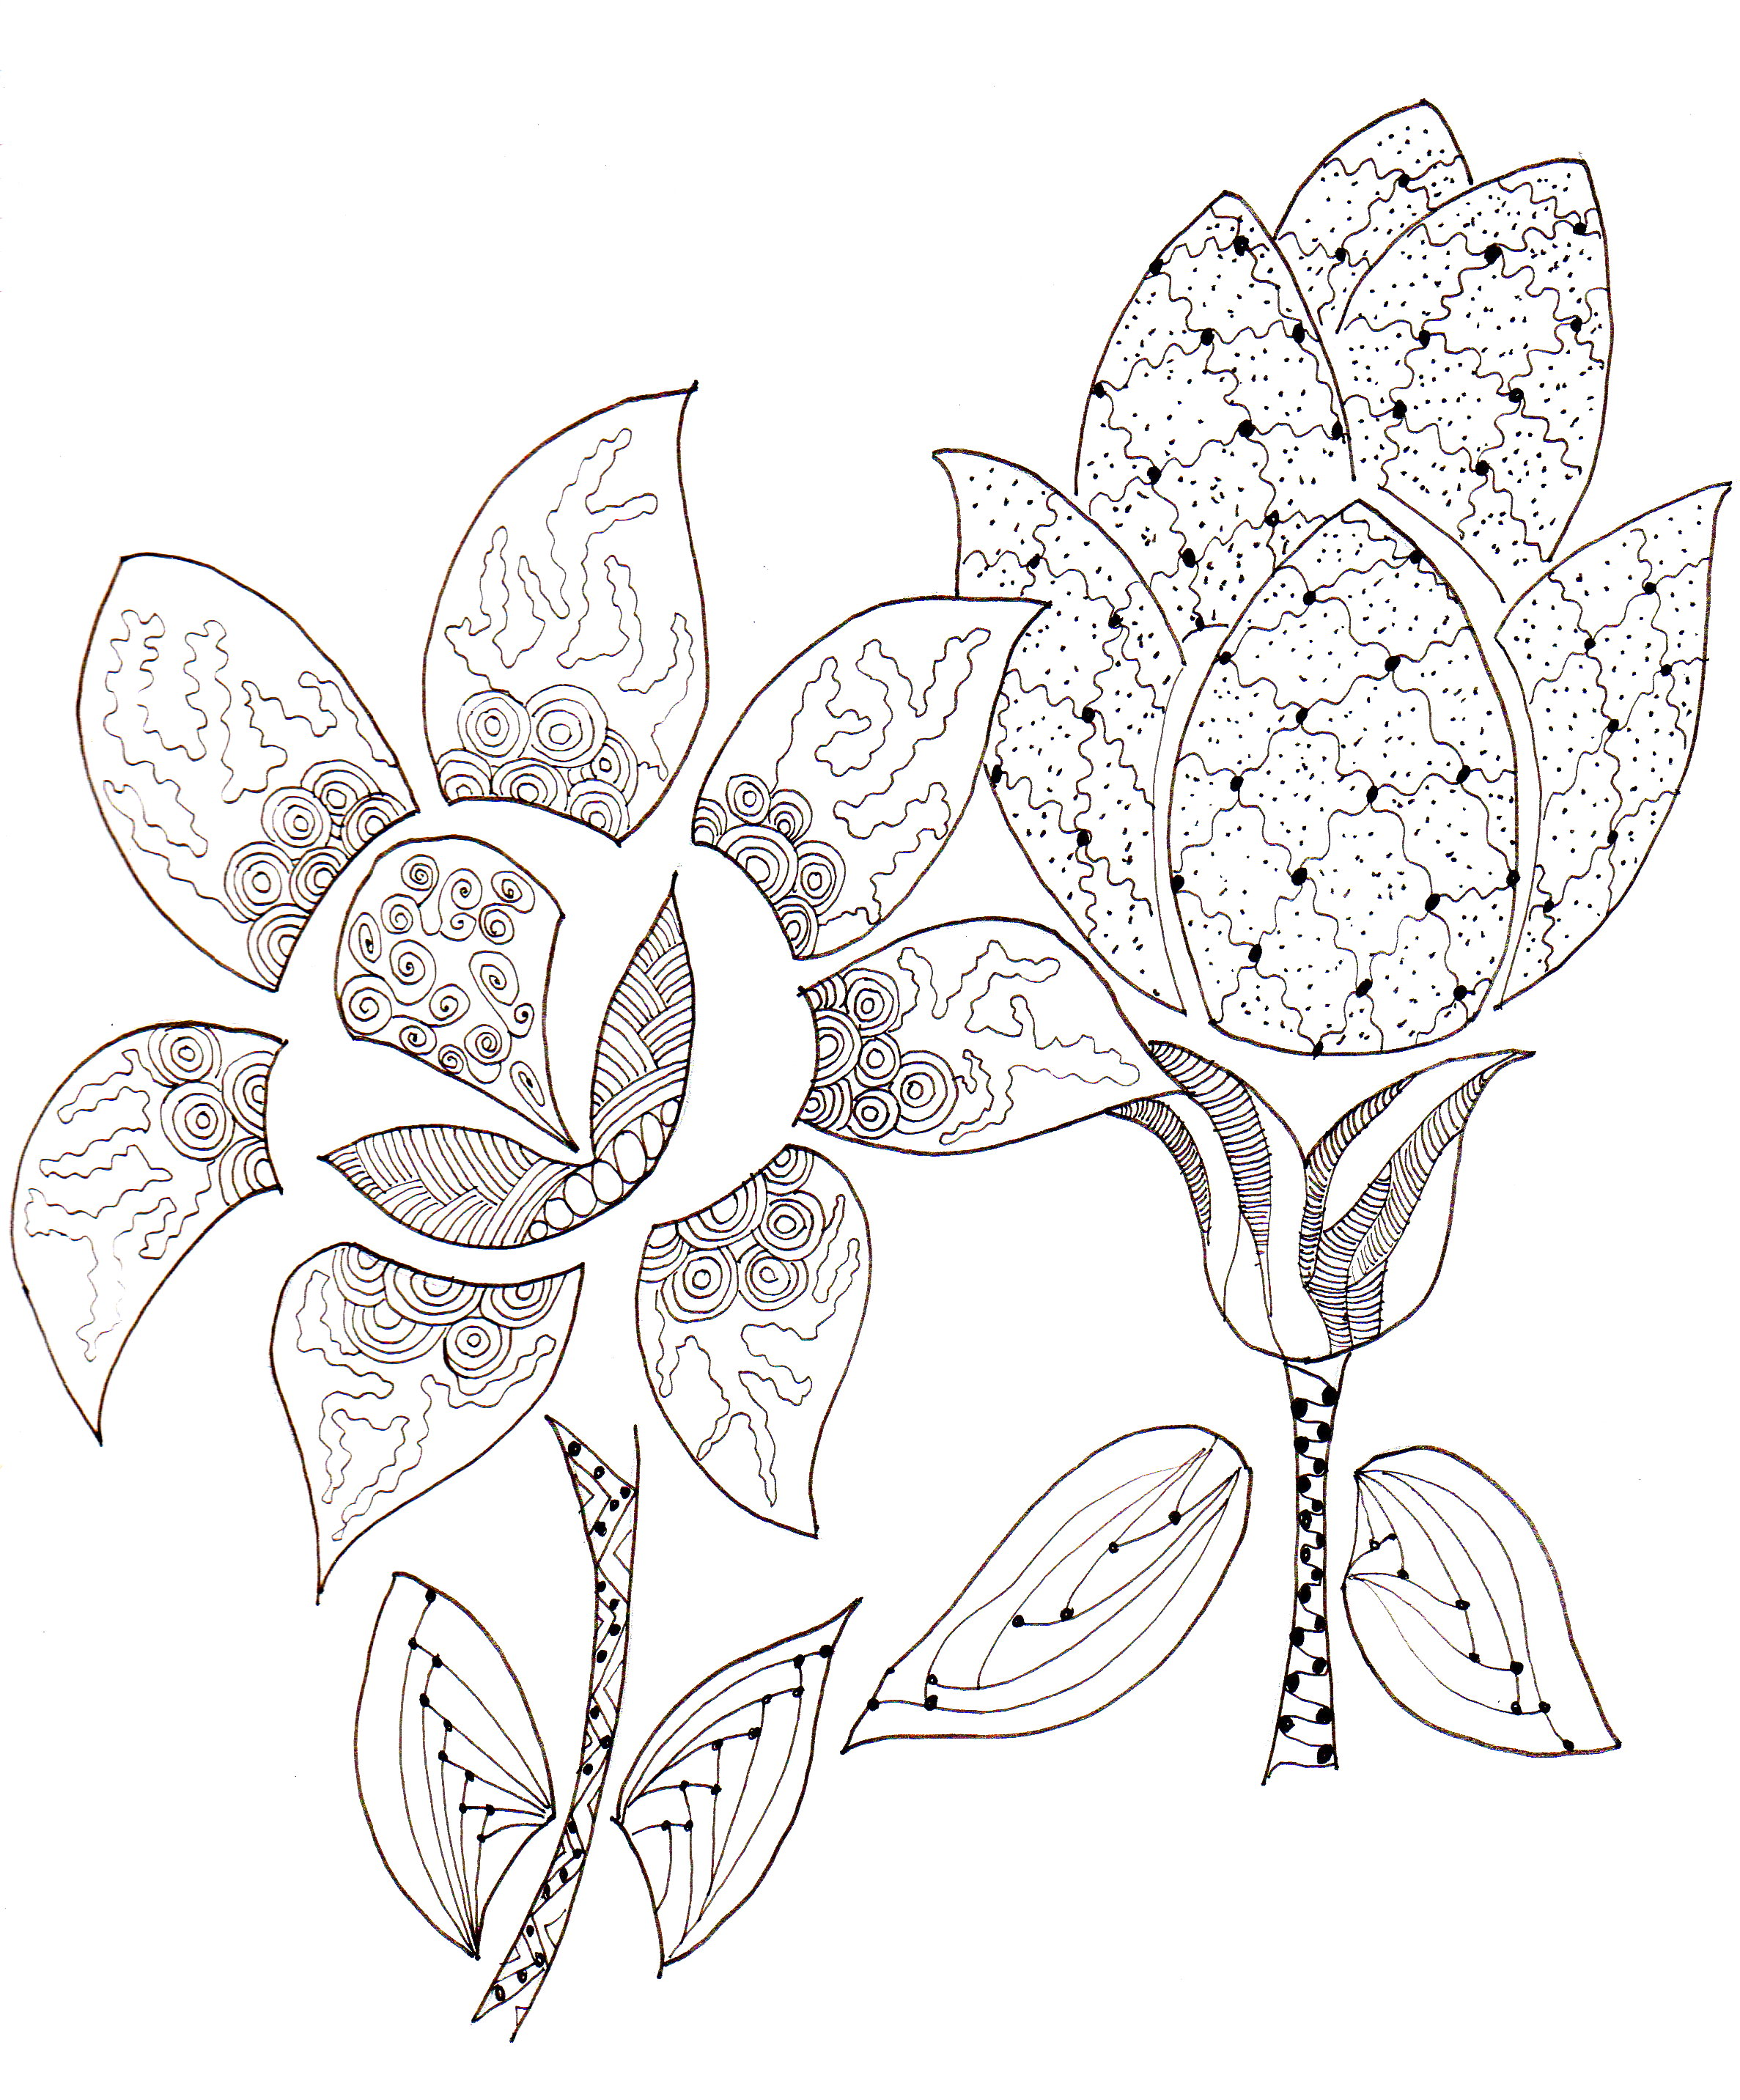 Drawn pot plant zentangle Struggling while a of zentangle